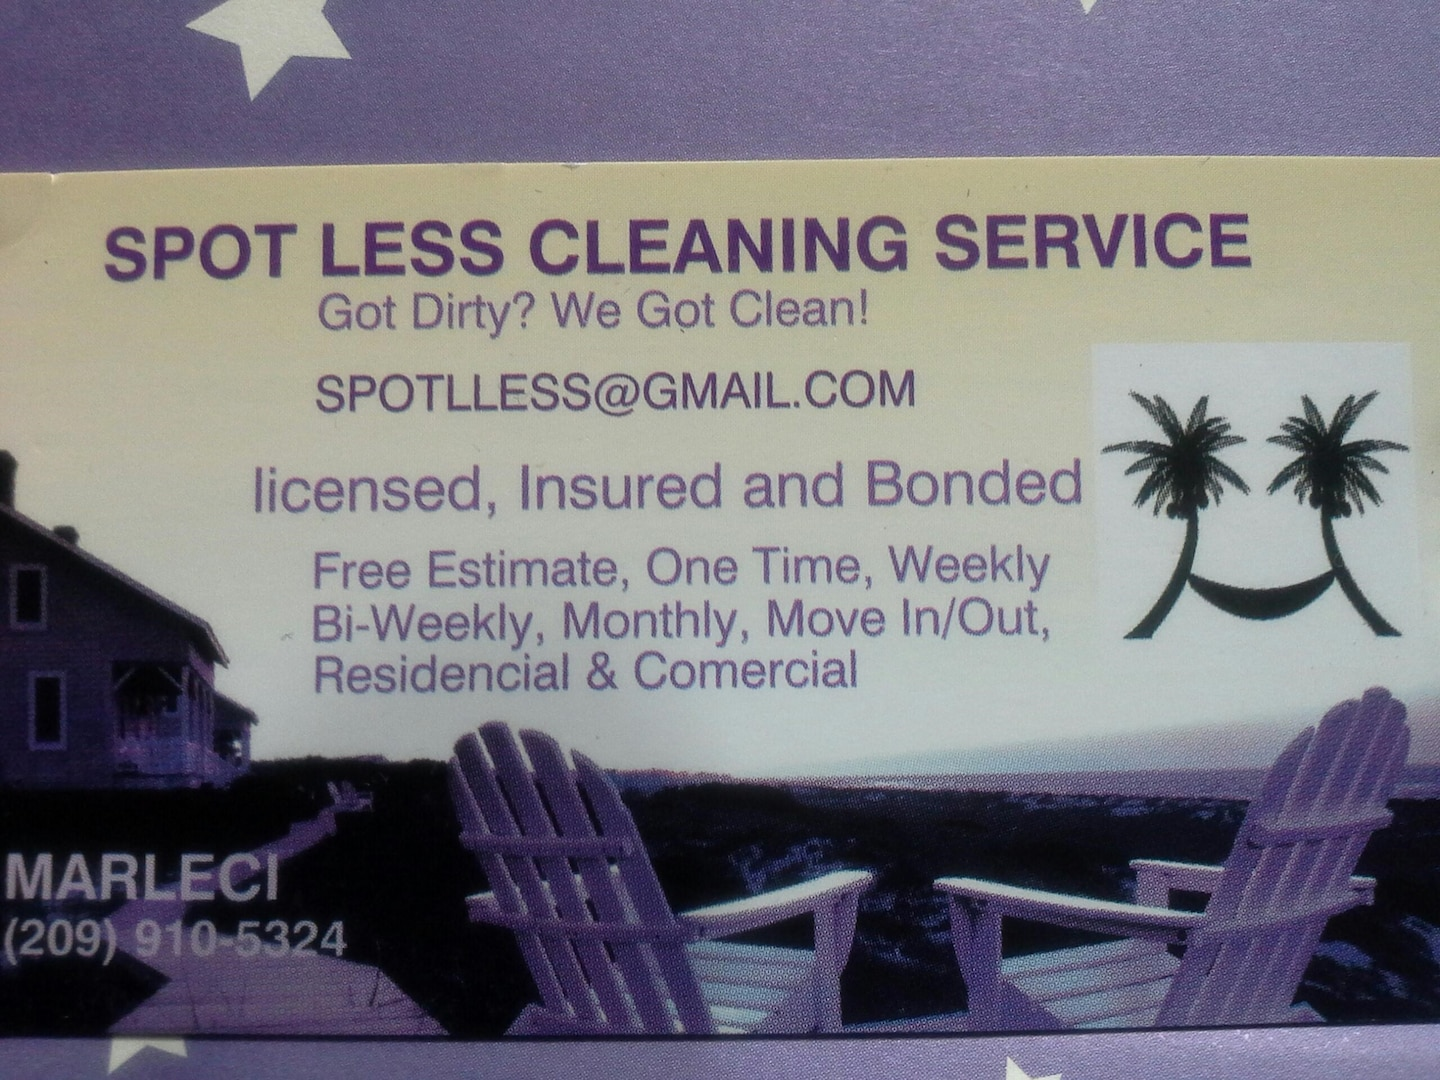 Spot Less Cleaning Service